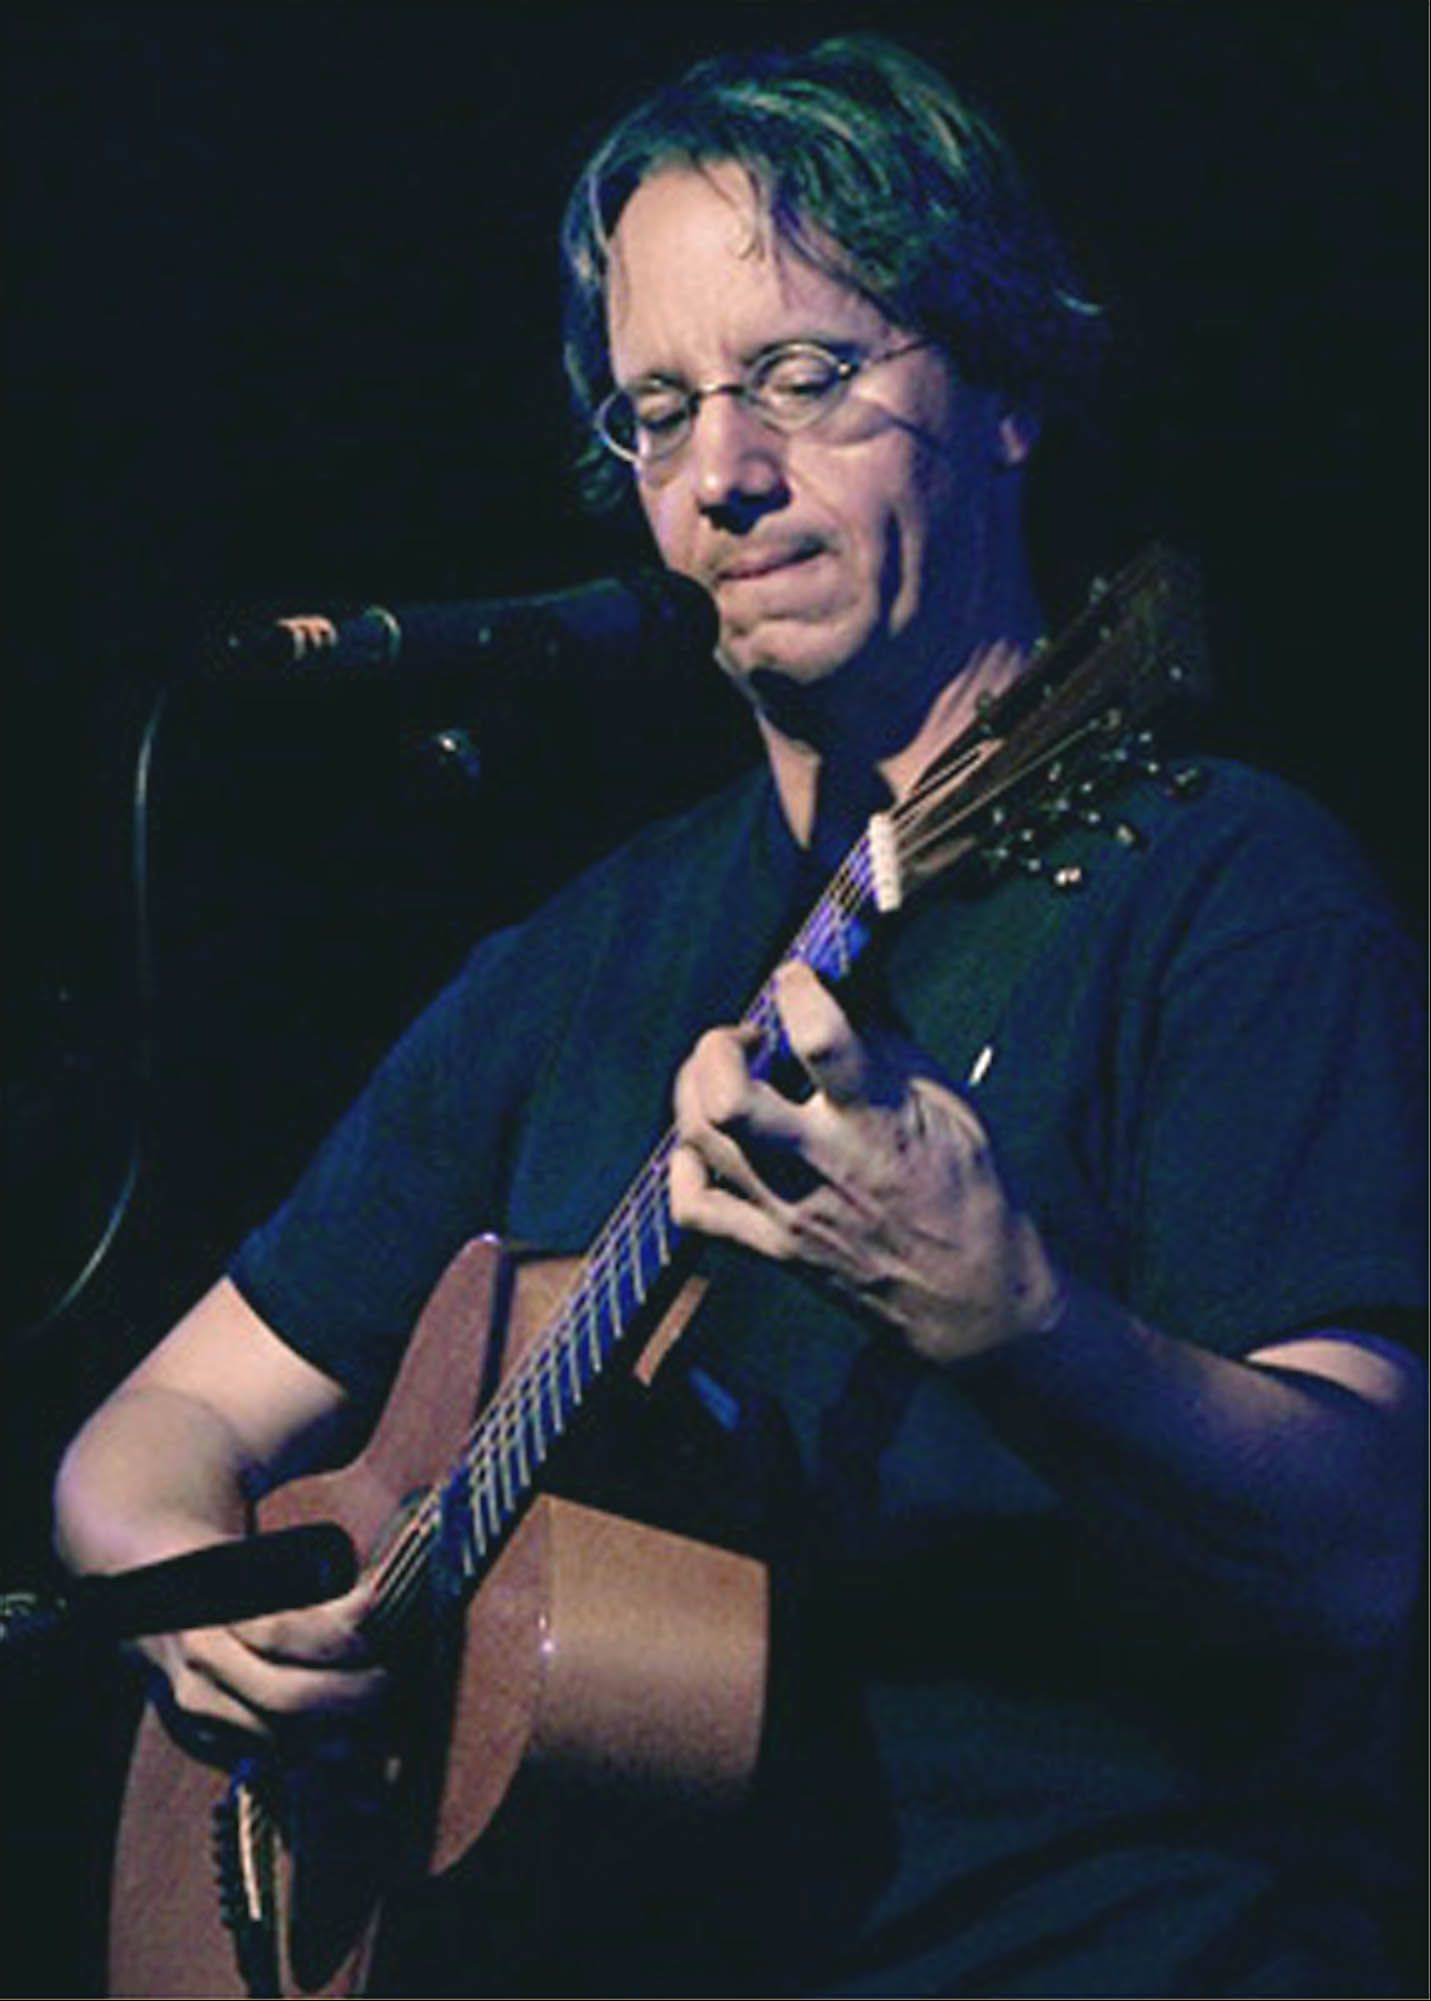 Andrew Calhoun, a Glen Ellyn-based songwriter, is a featured performer at the Fox Valley Folk Music & Storytelling Festival in Geneva.